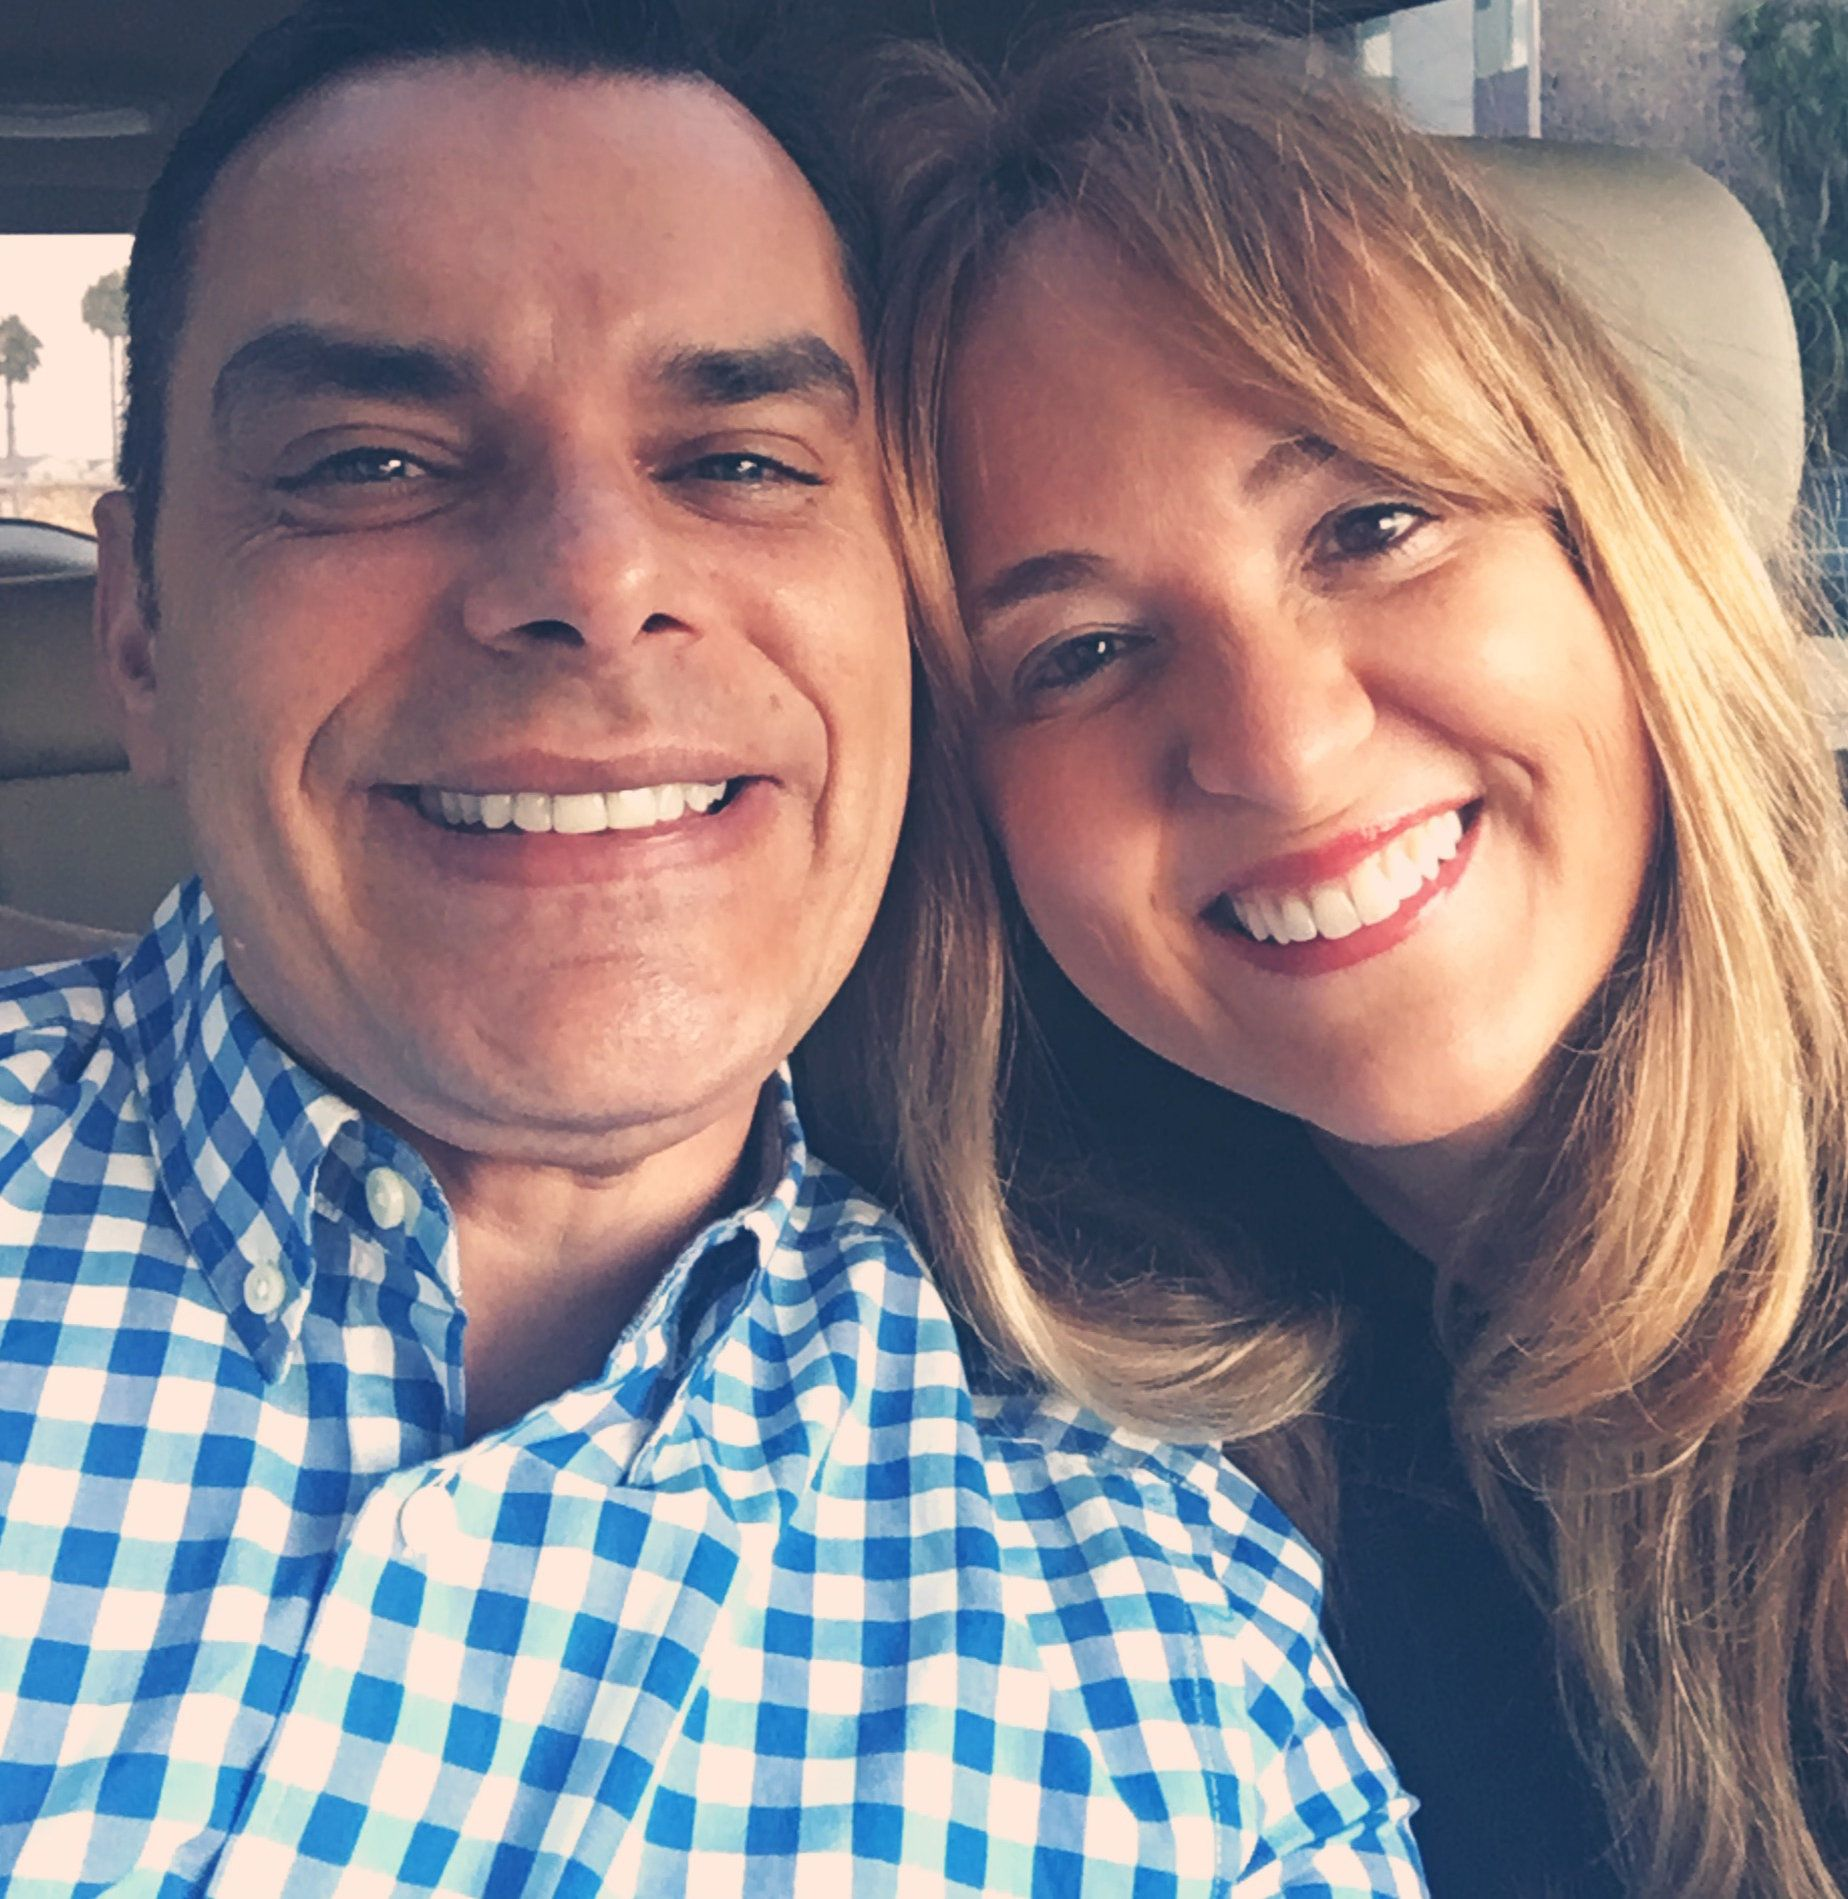 After three failed in-vitro fertilization treatments and a stalled adoption application, Rey Funes and Paula Campos plan to h